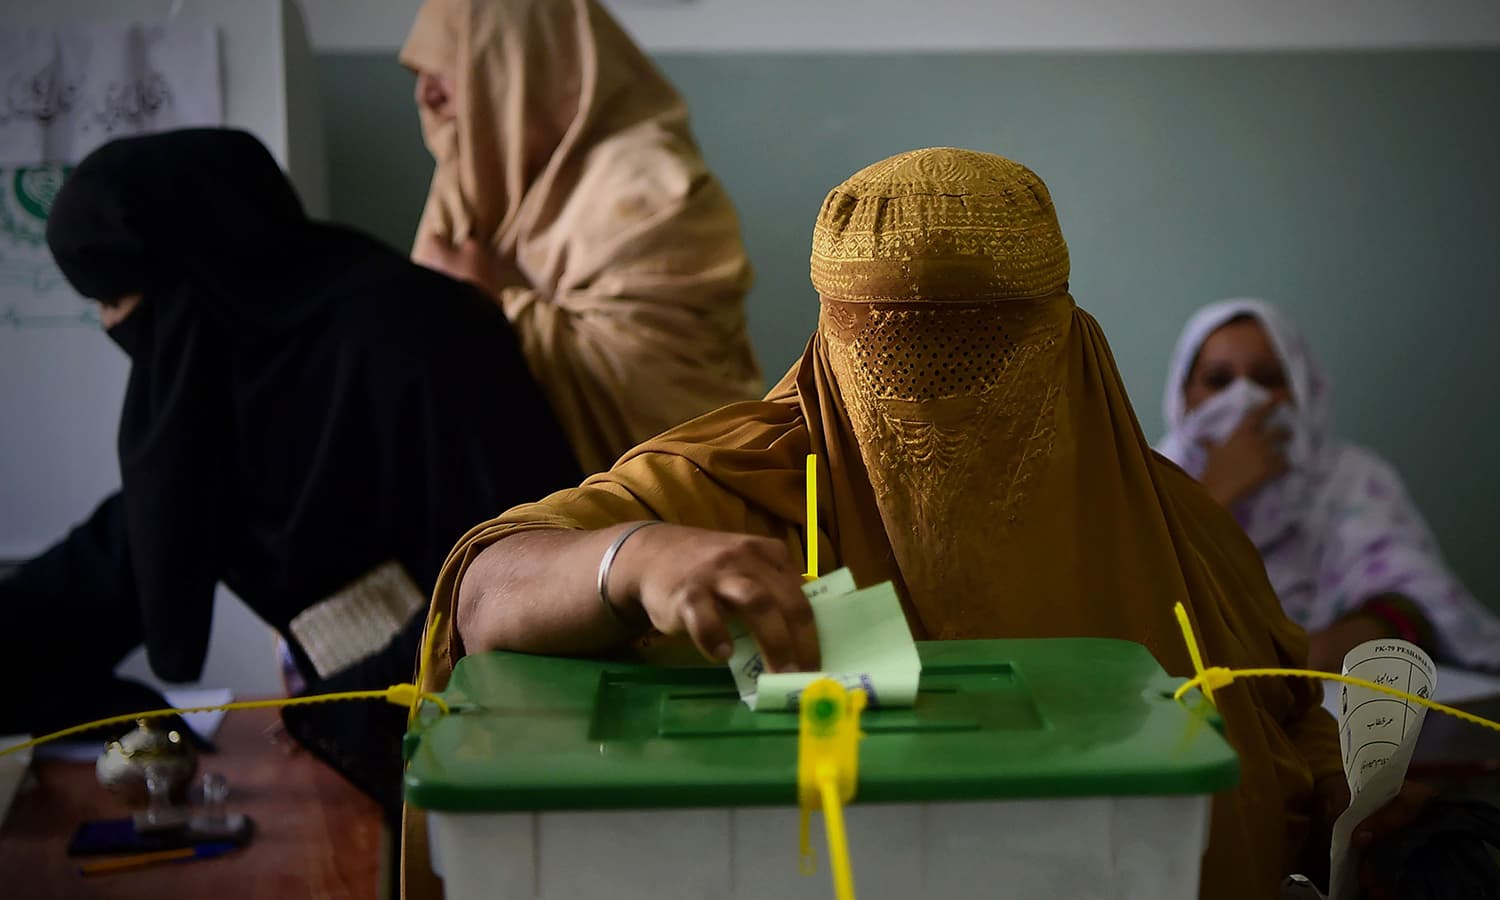 A woman casts her vote at a polling station in Peshawar. — AFP